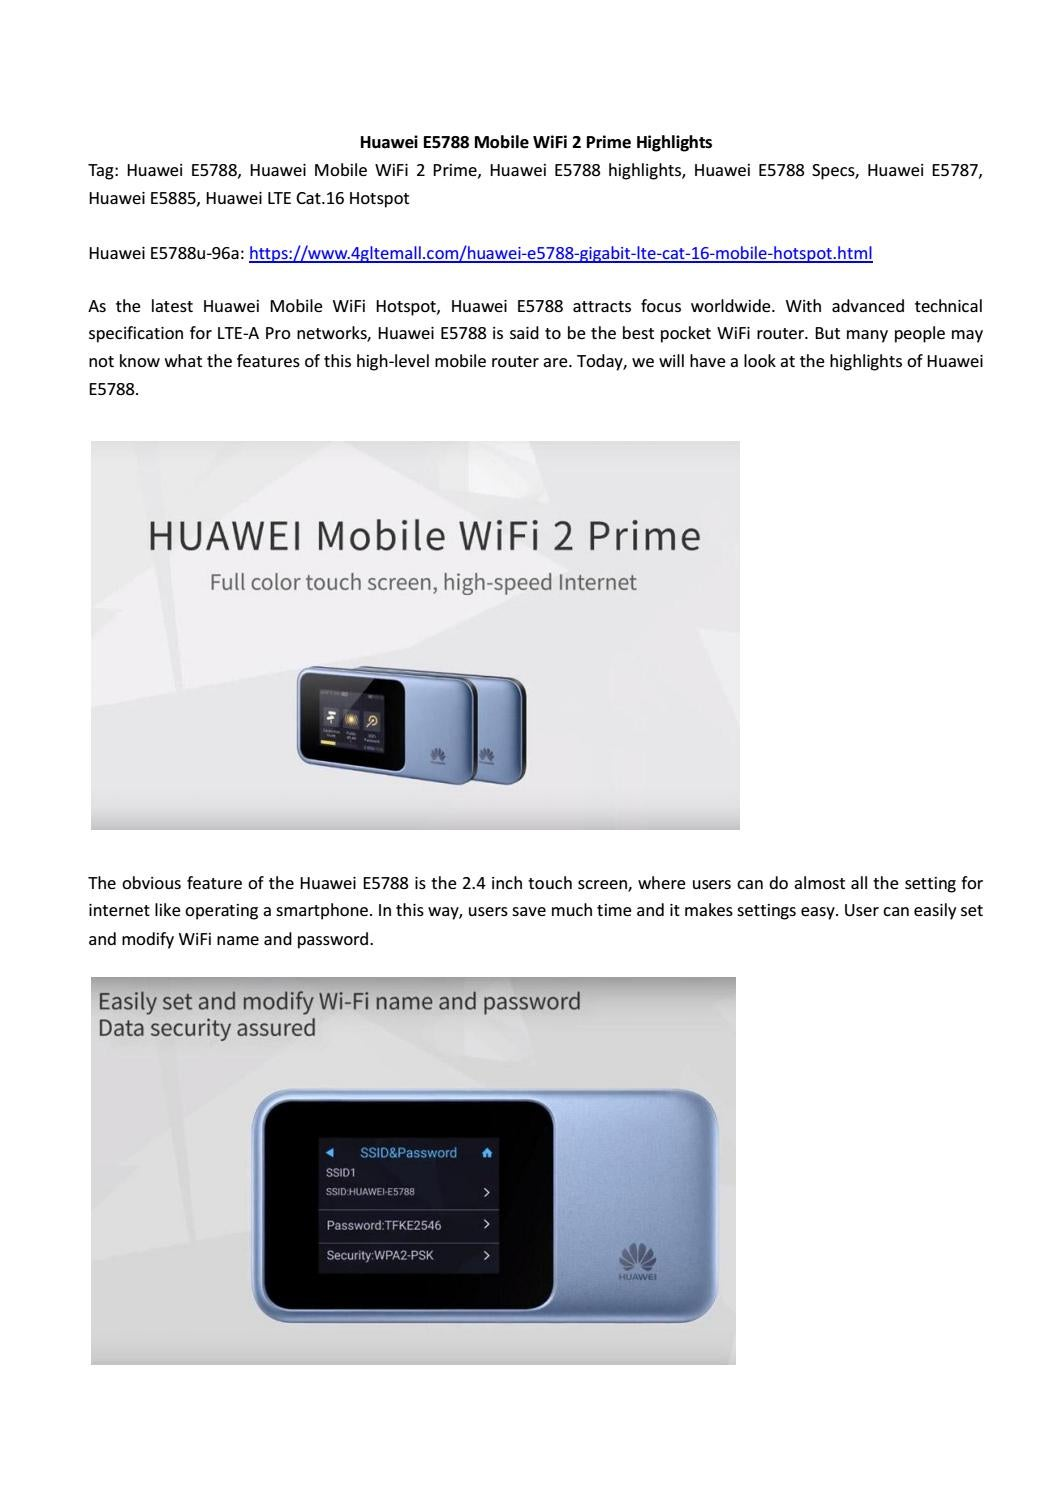 Huawei e5788 mobile wifi 2 prime highlights review by Lte Mall - issuu